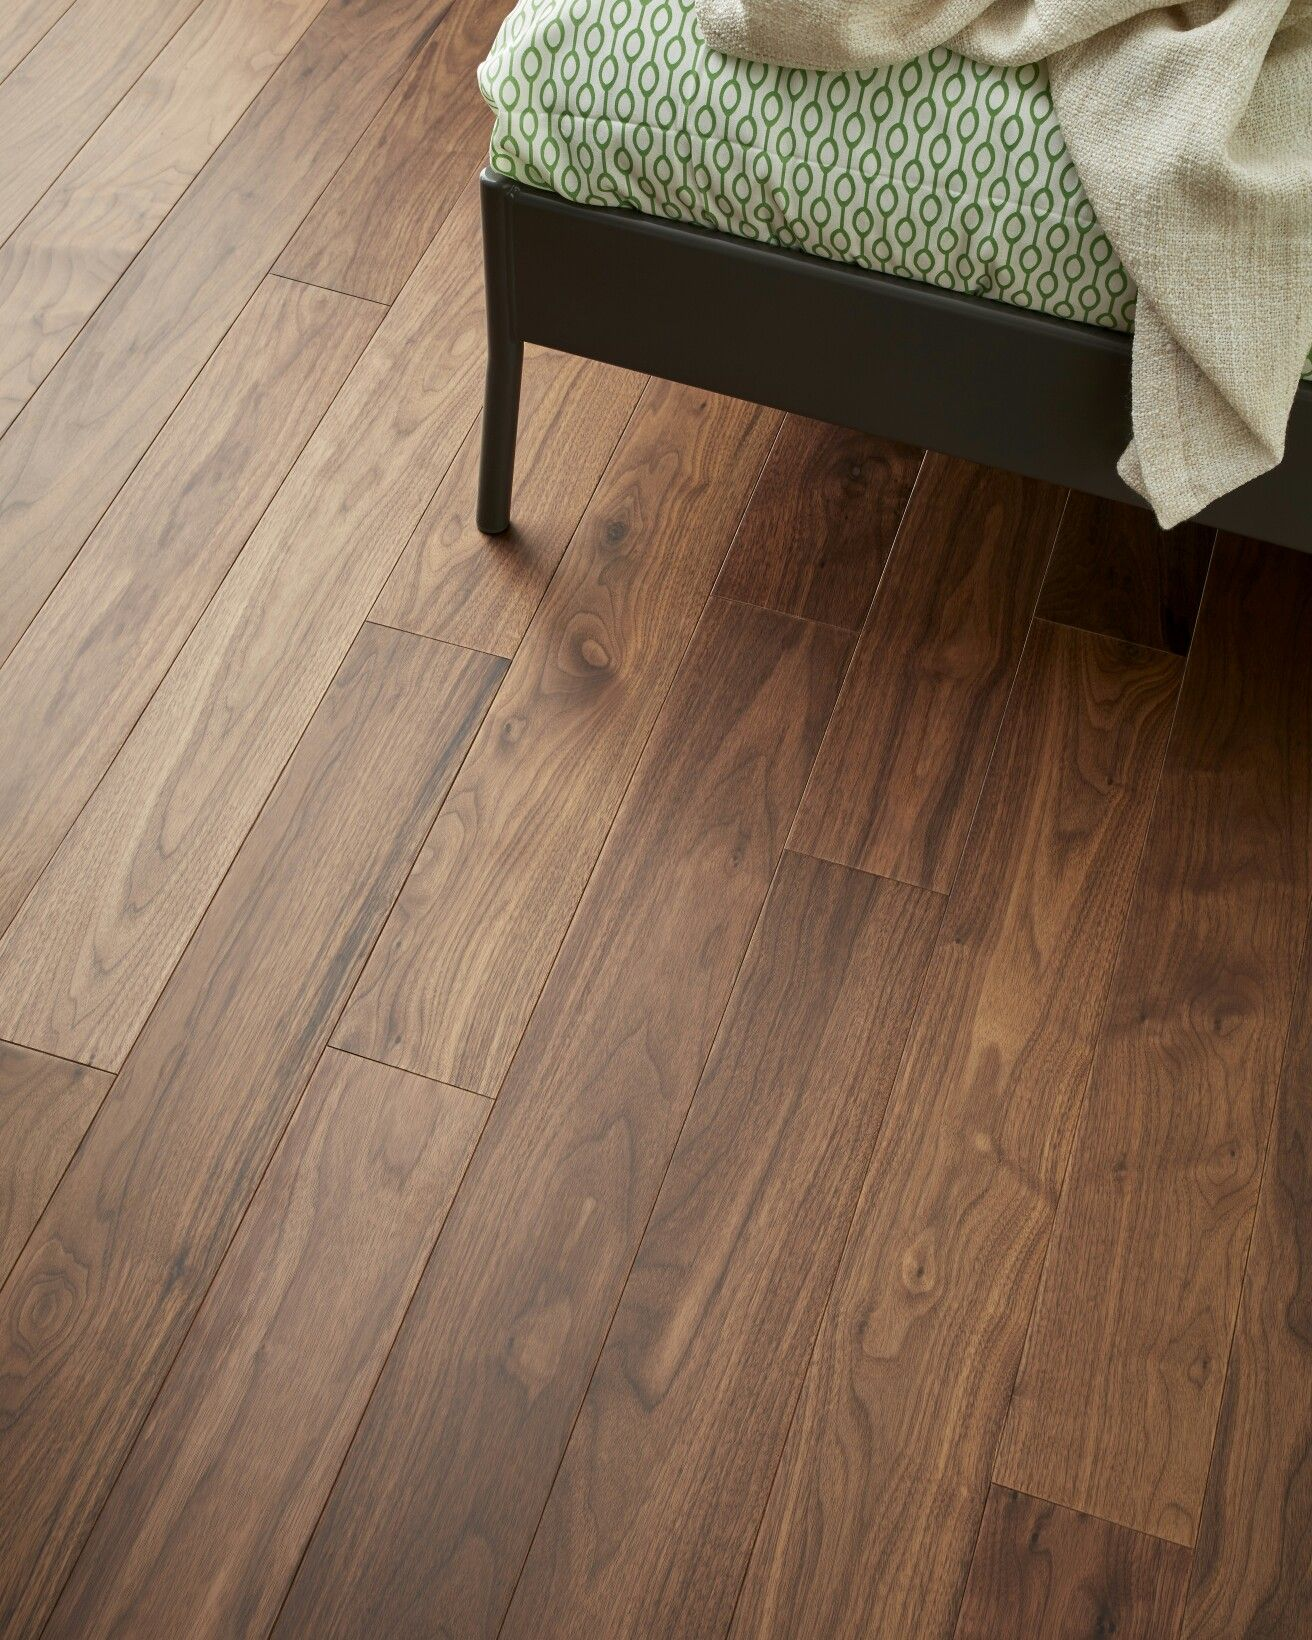 Range Raglan, Colour Walnut Engineered wood floors